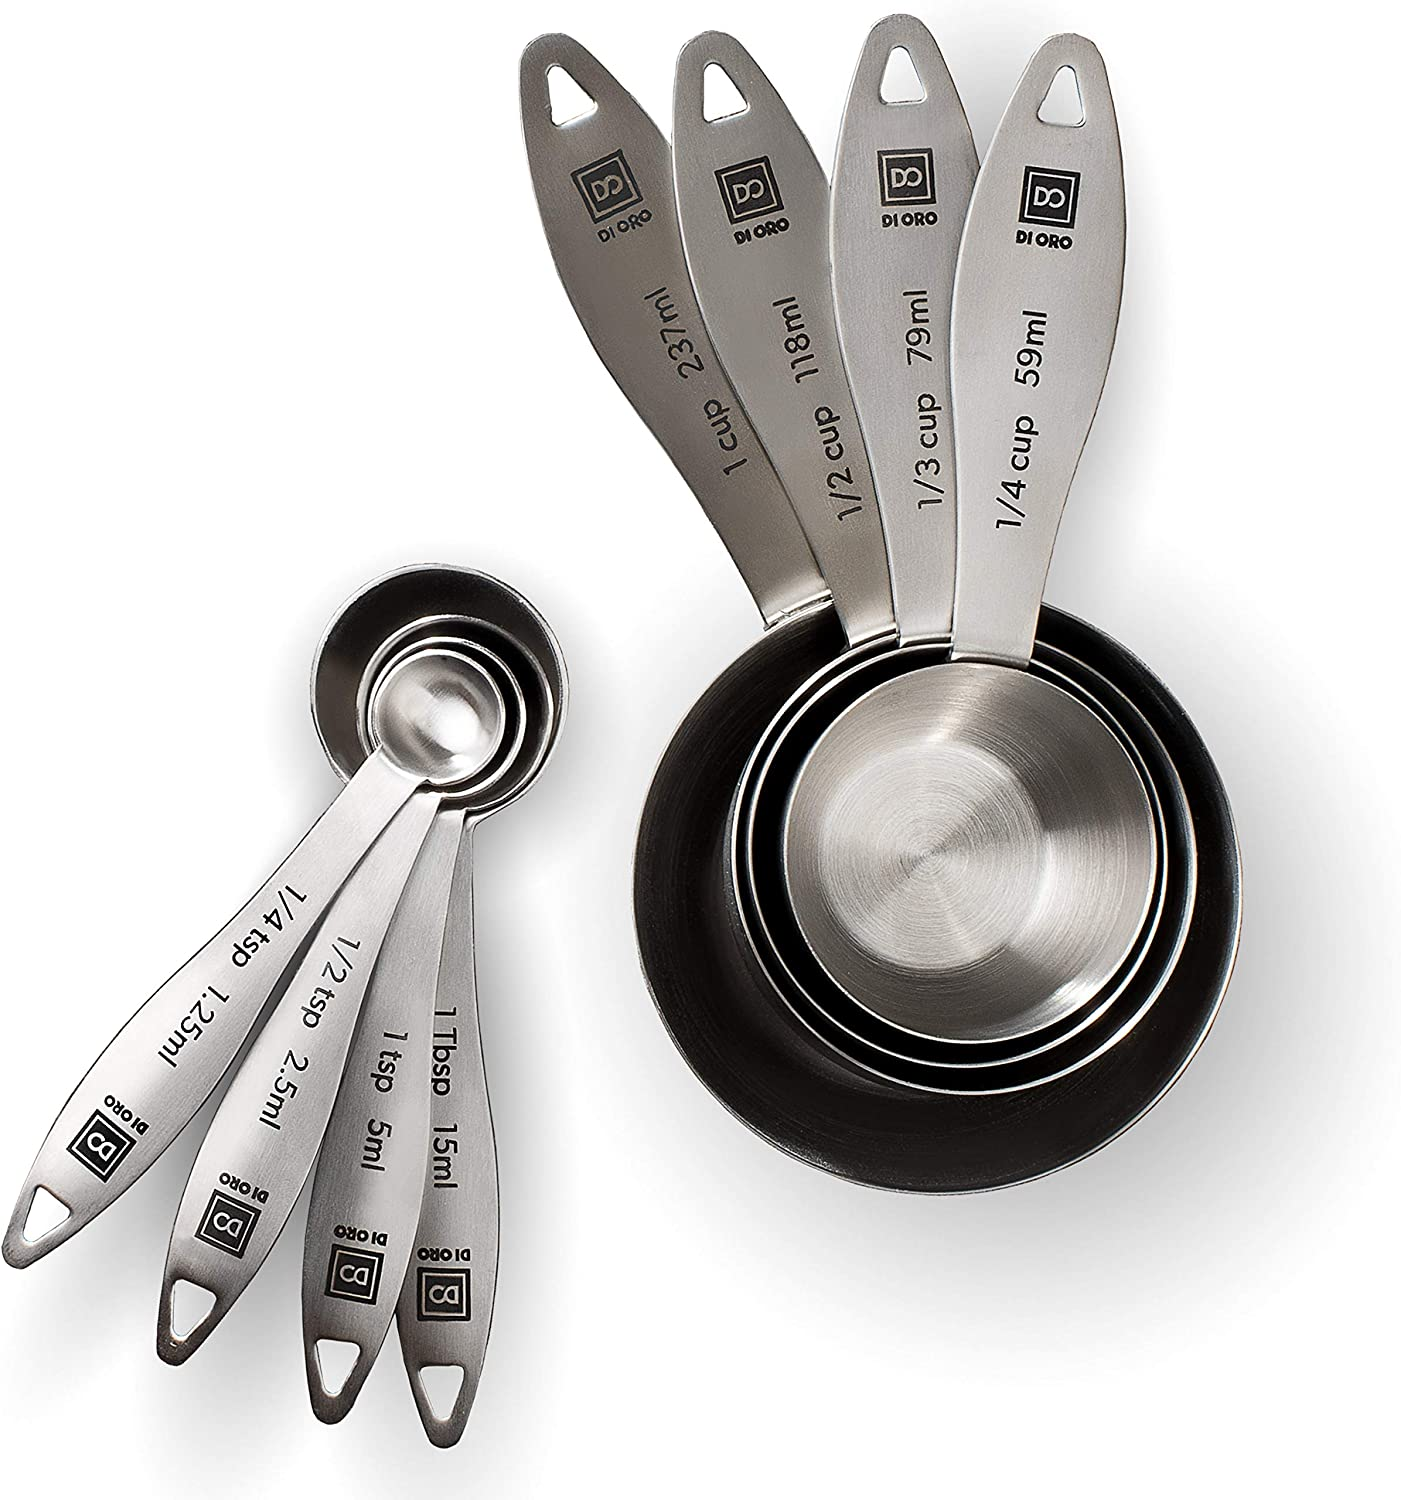 New DI ORO 8-Piece 18/8 Stainless Steel Measuring Cup and Spoon Set - Easy-to-Read Measurements - For Dry and Liquid Ingredients - Great Kitchen Tools for Cooking and Baking - Dishwasher Safe